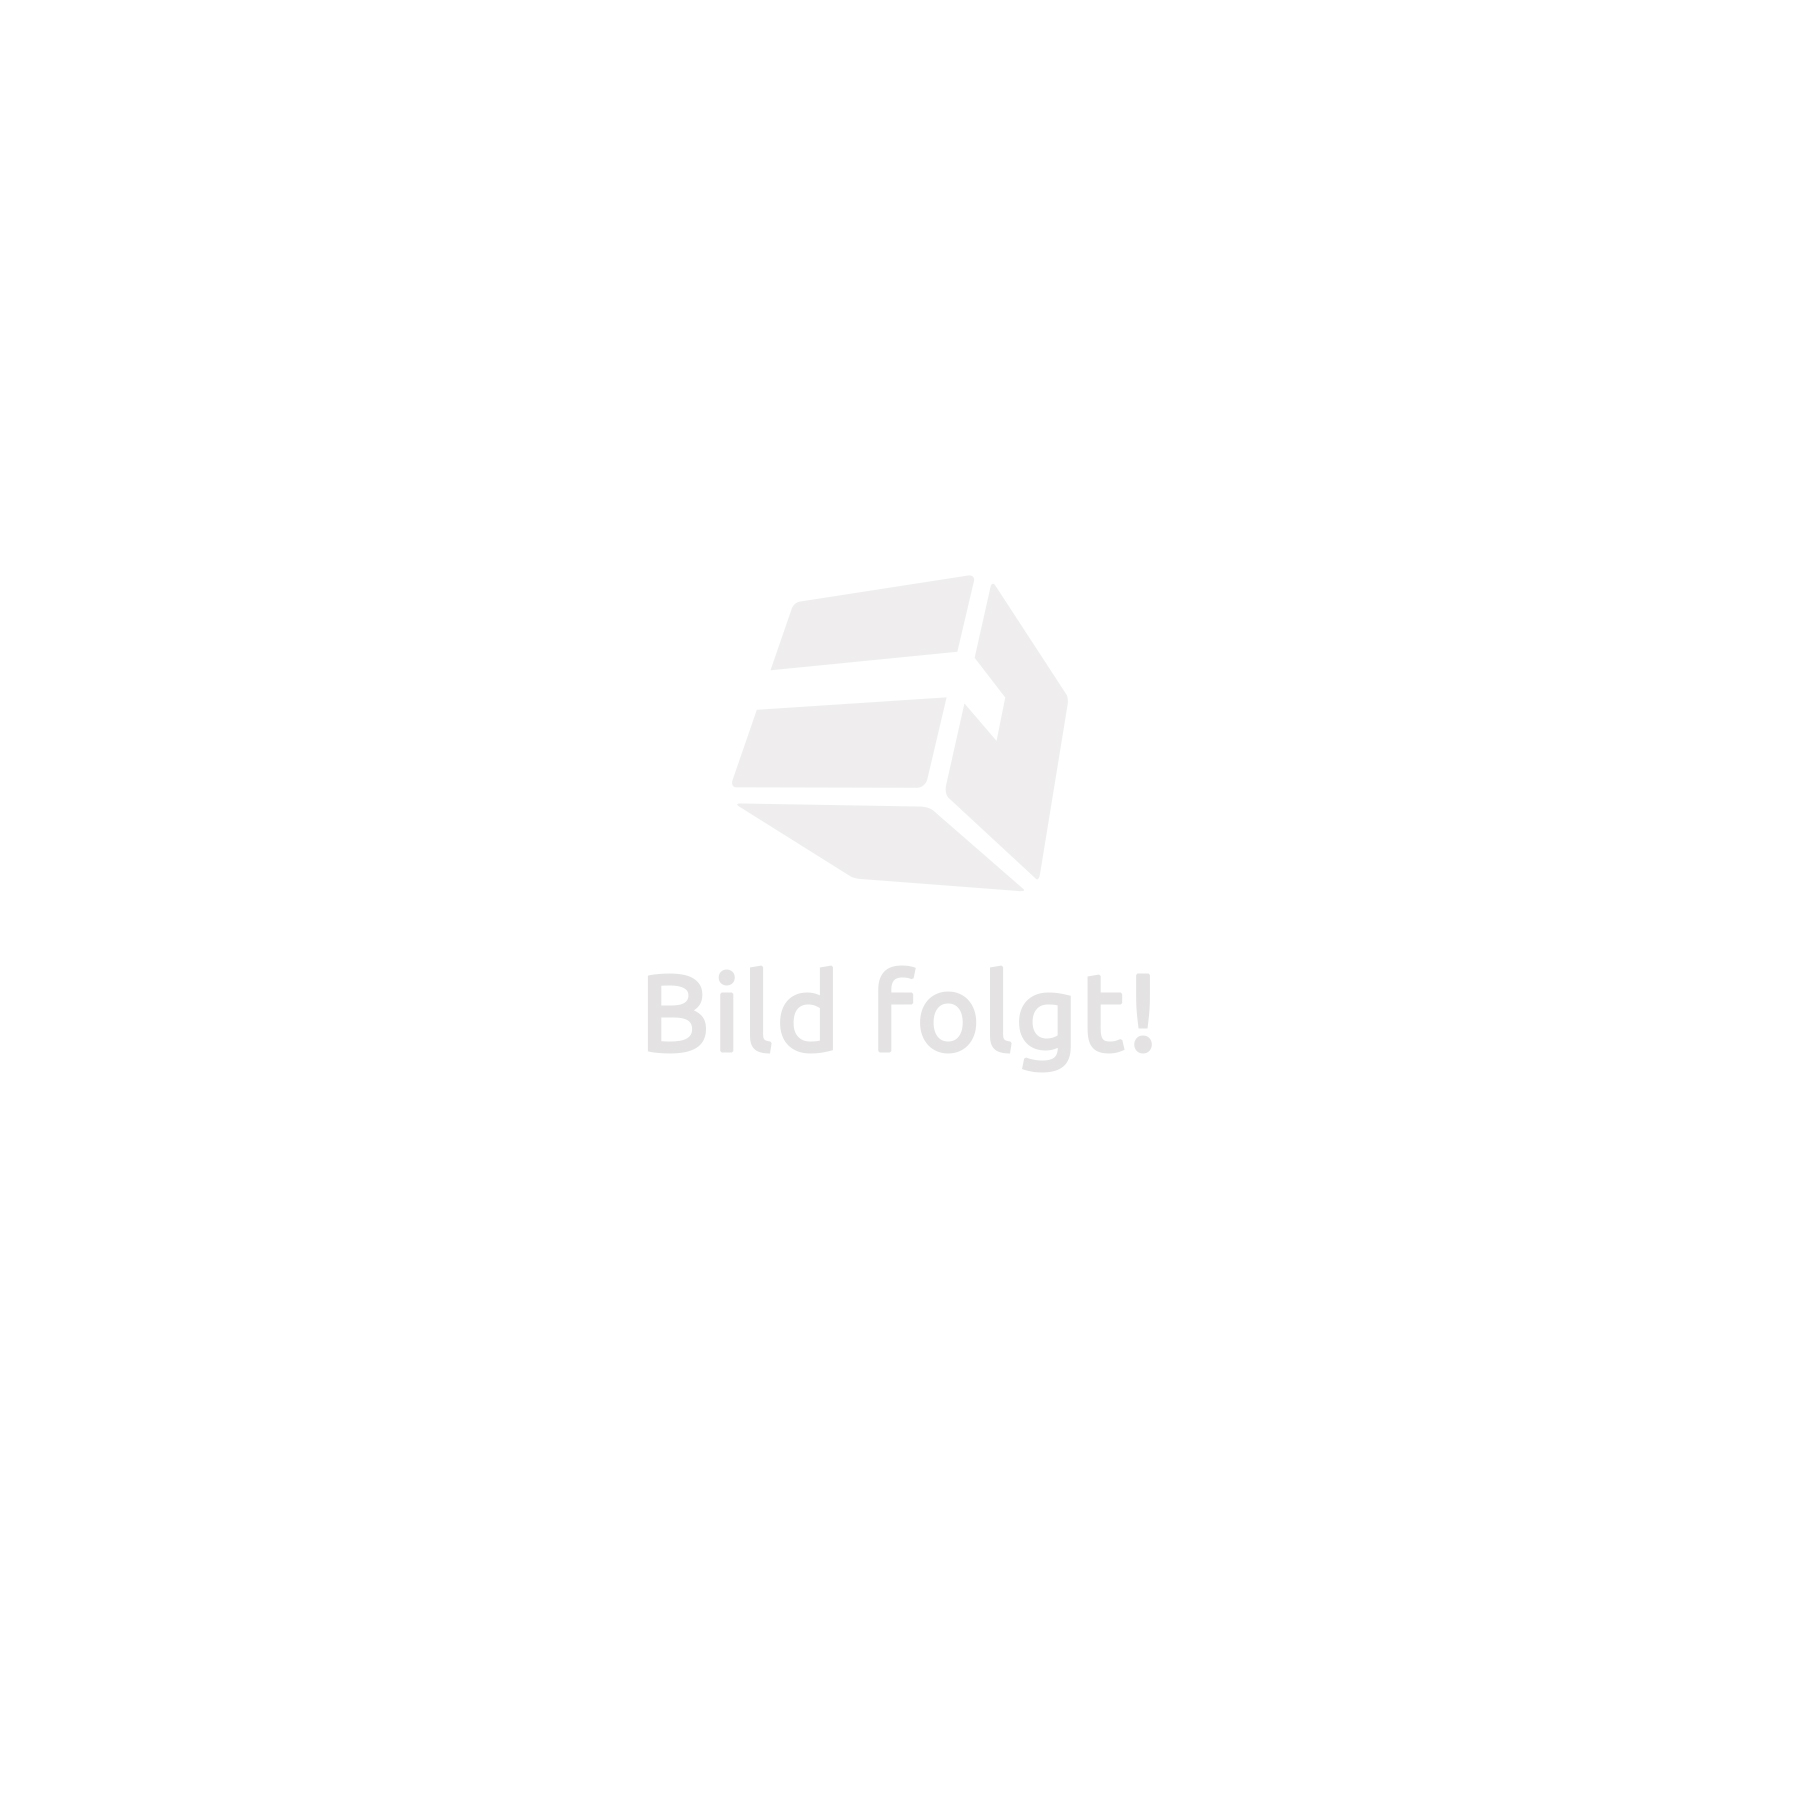 Table and bench set 176cm with backrest